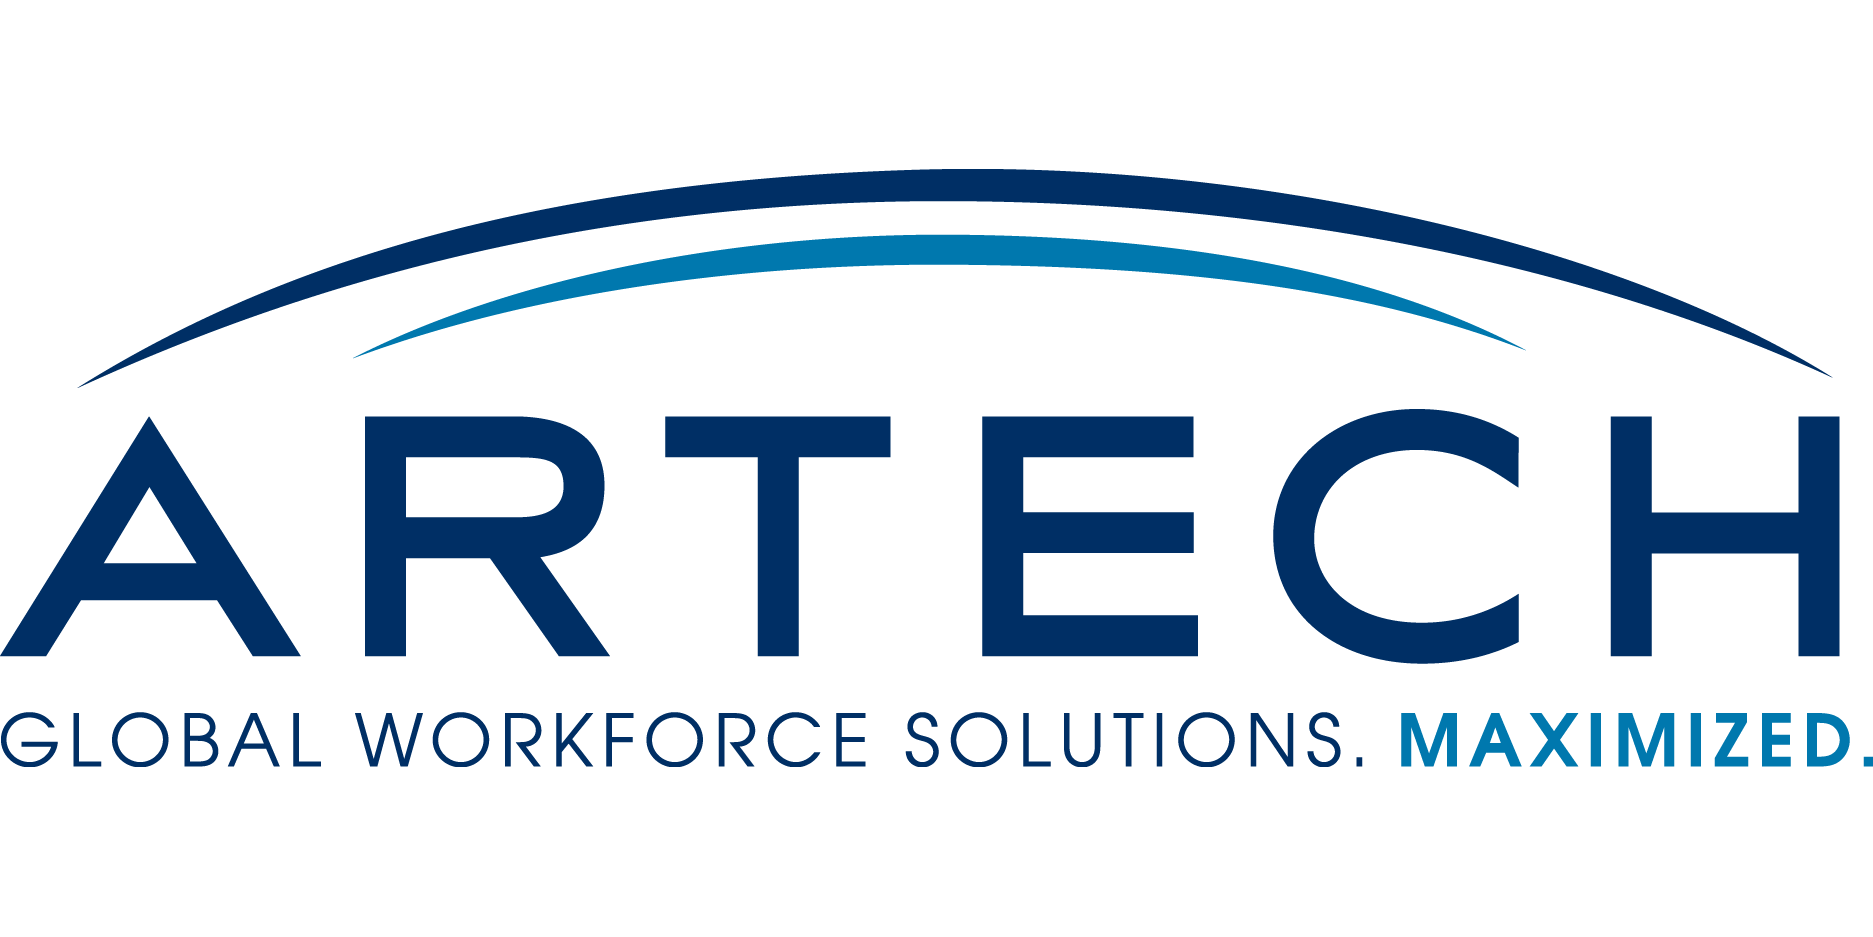 Clinical Data Management Manager Job At Artech Information Systems